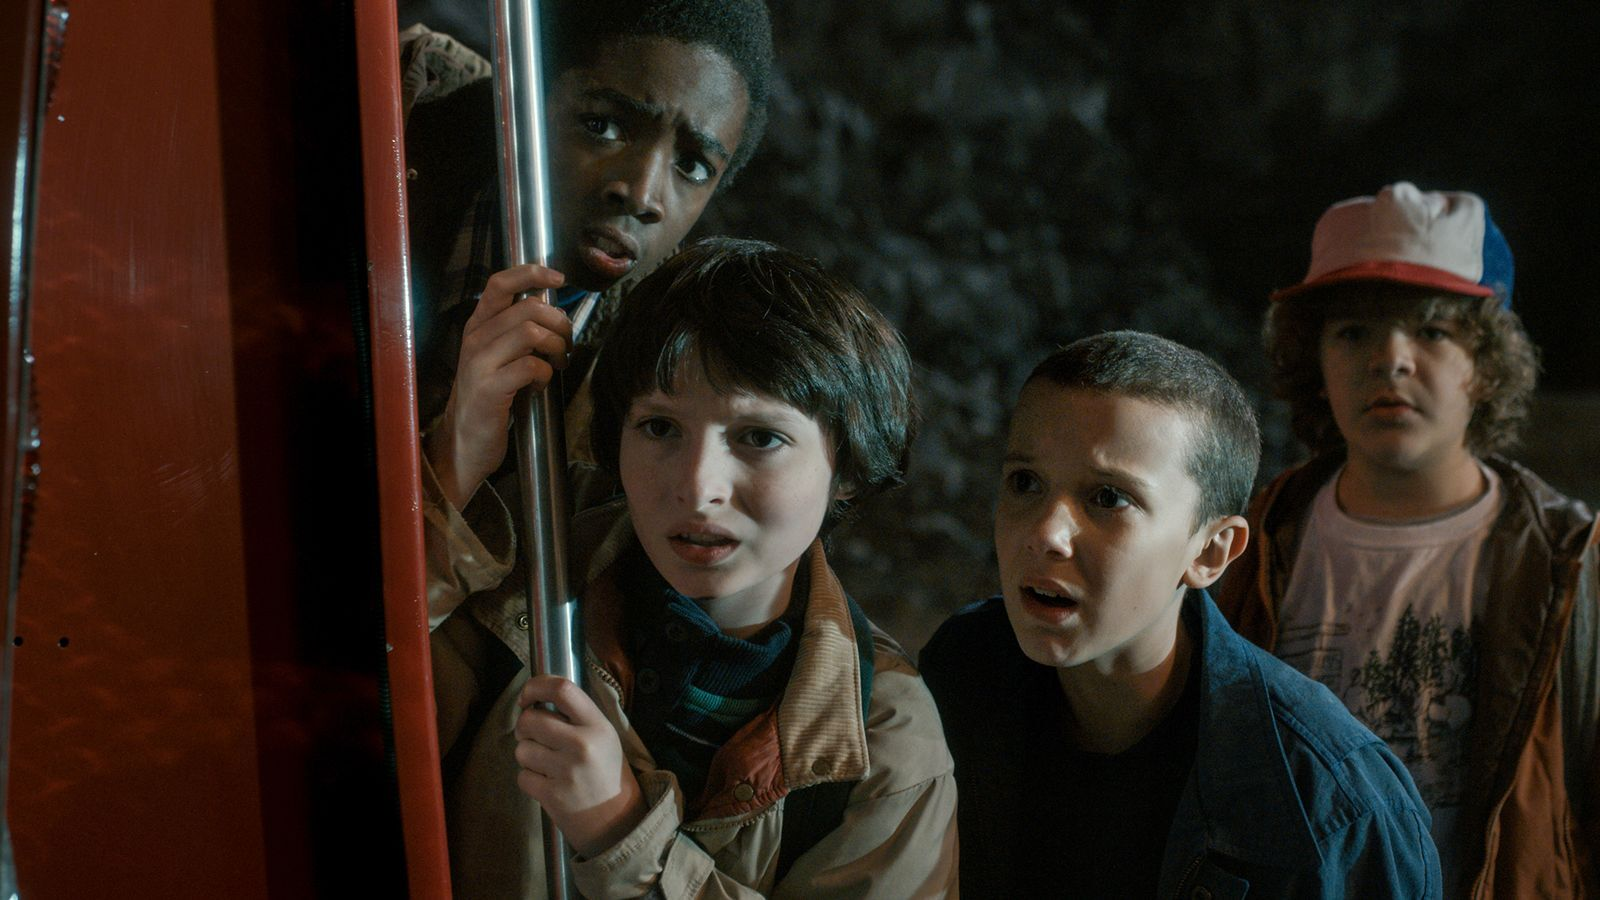 50 Best TV Shows on Netflix: Stranger Things moves up again